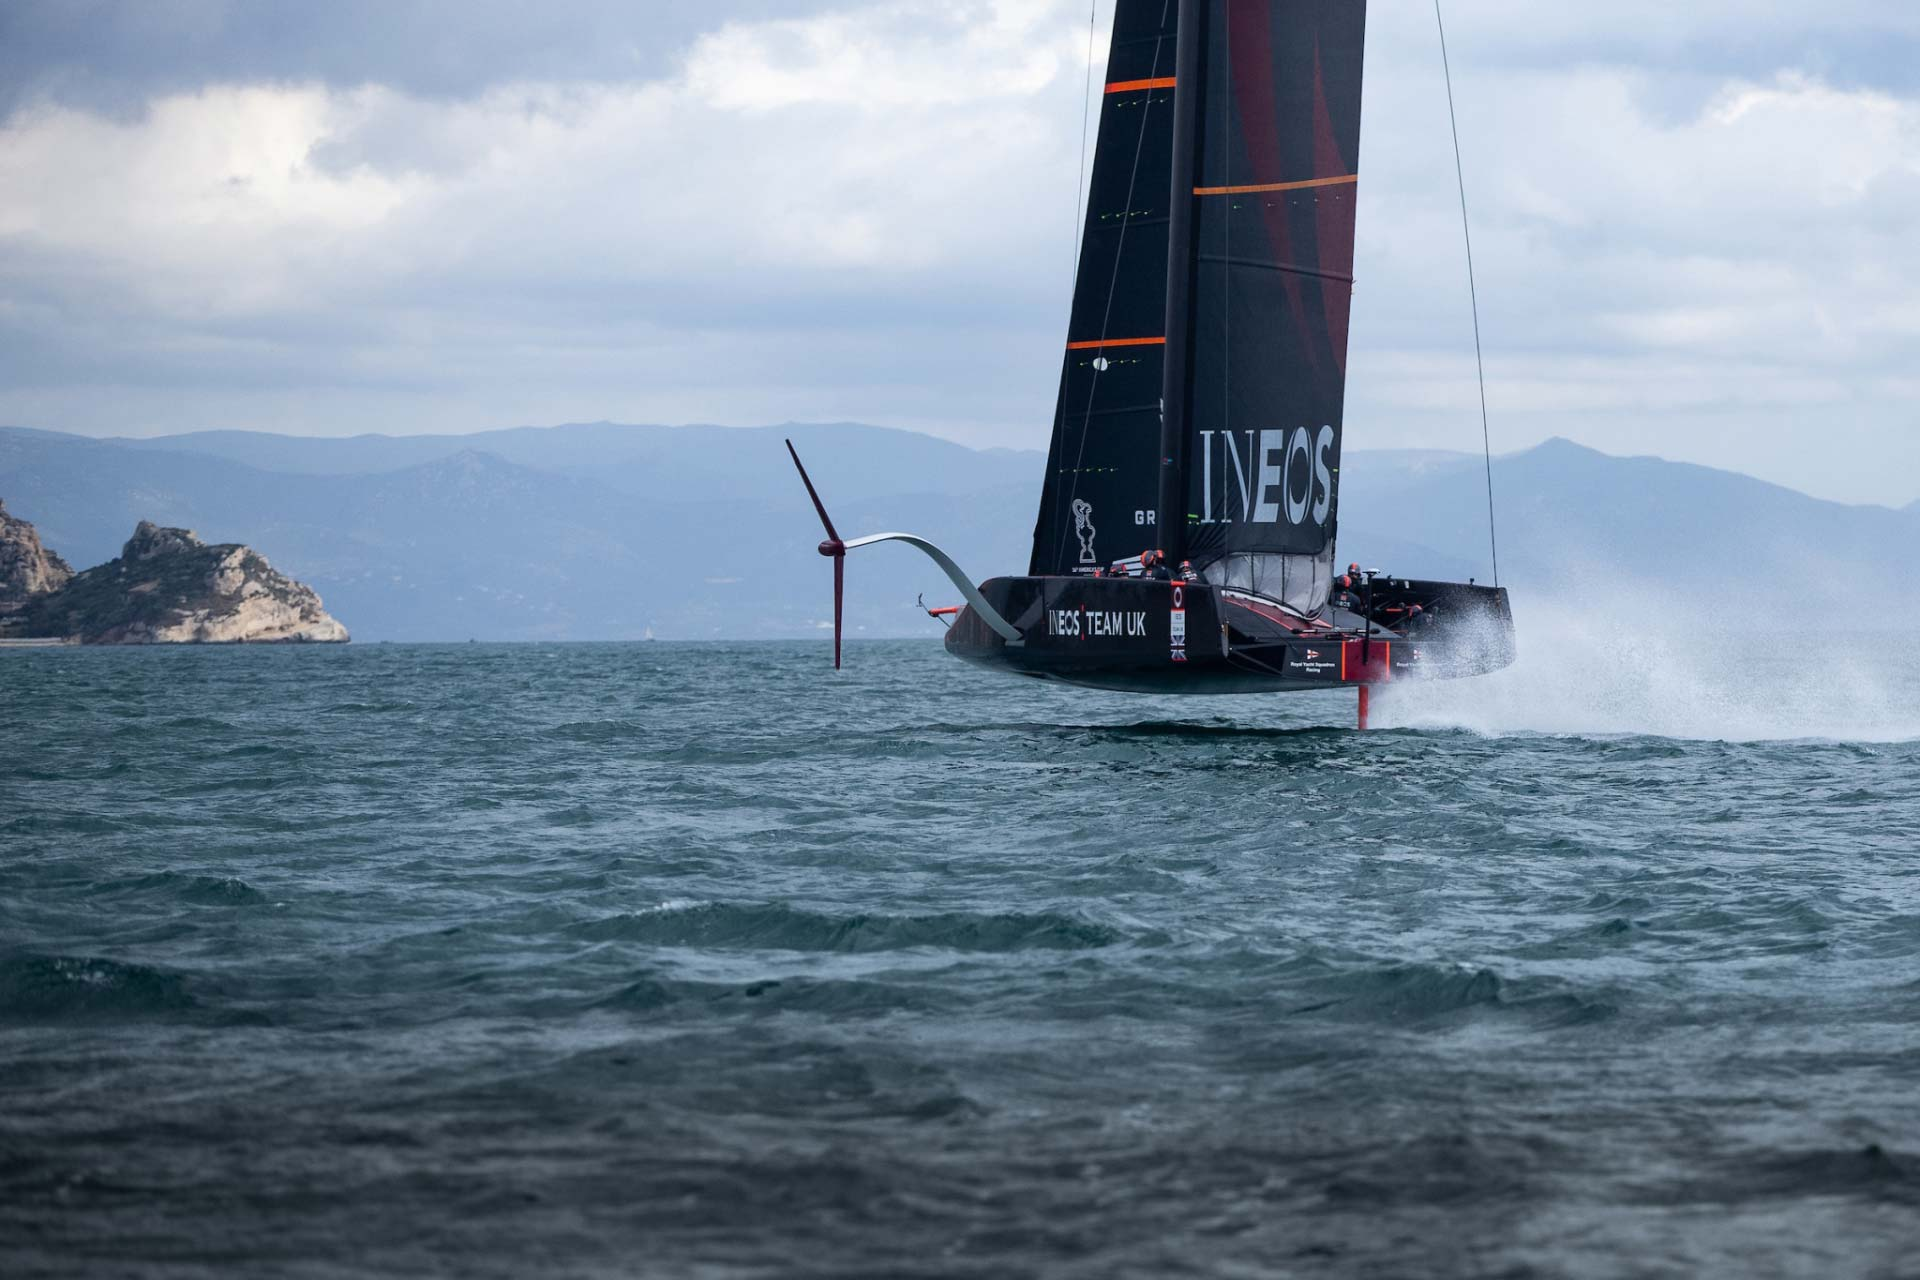 ainslie americas cup 140420